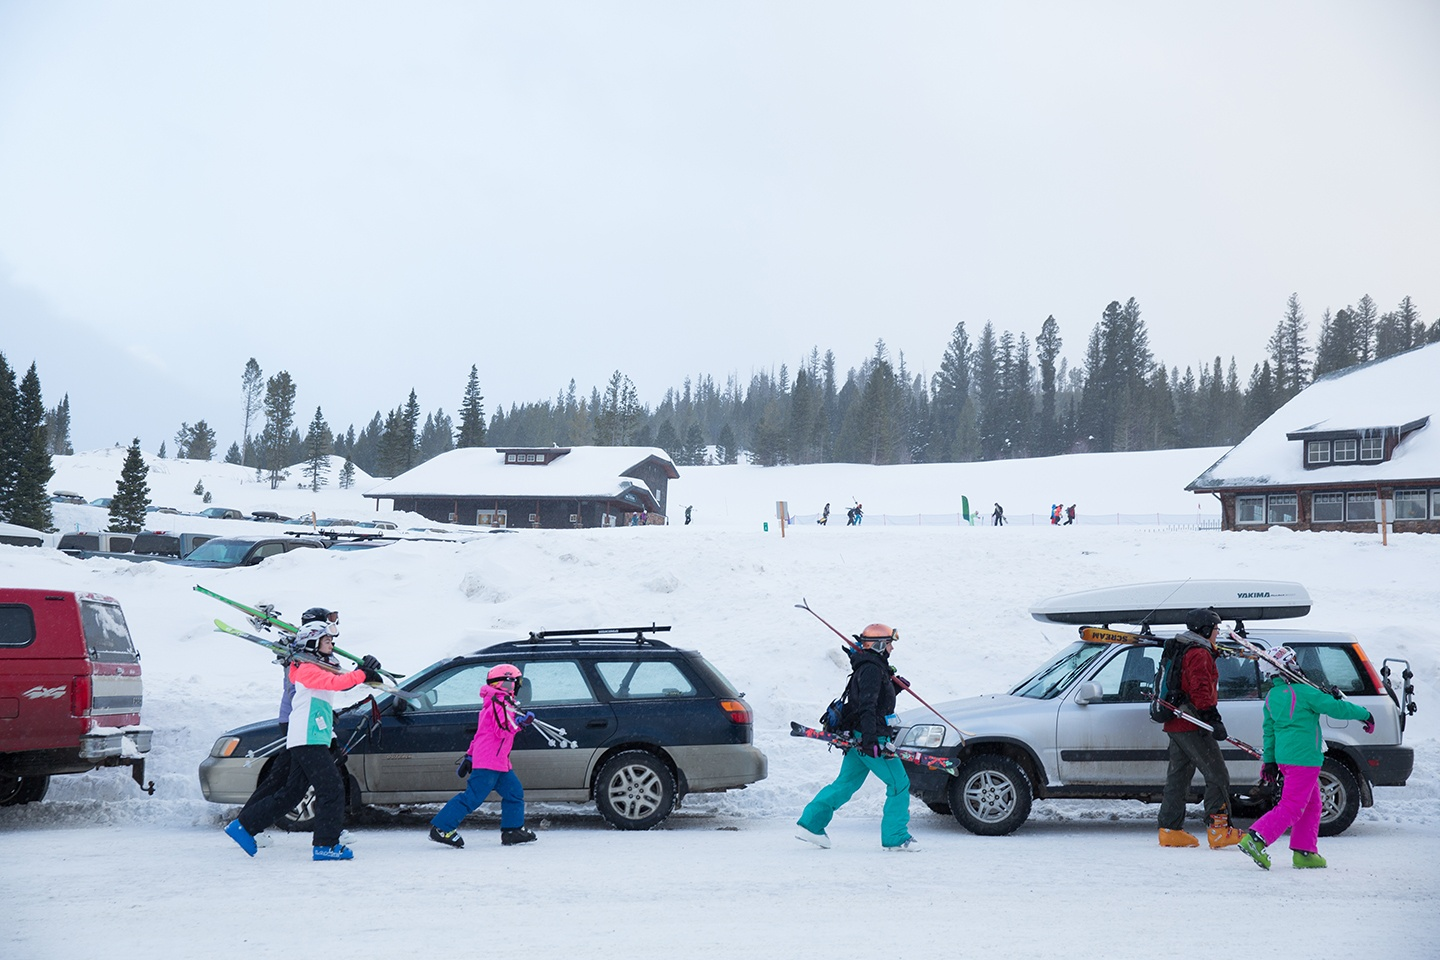 Family Heads Out for a Day of Skiing at Bridger Bowl in Bozeman Montana